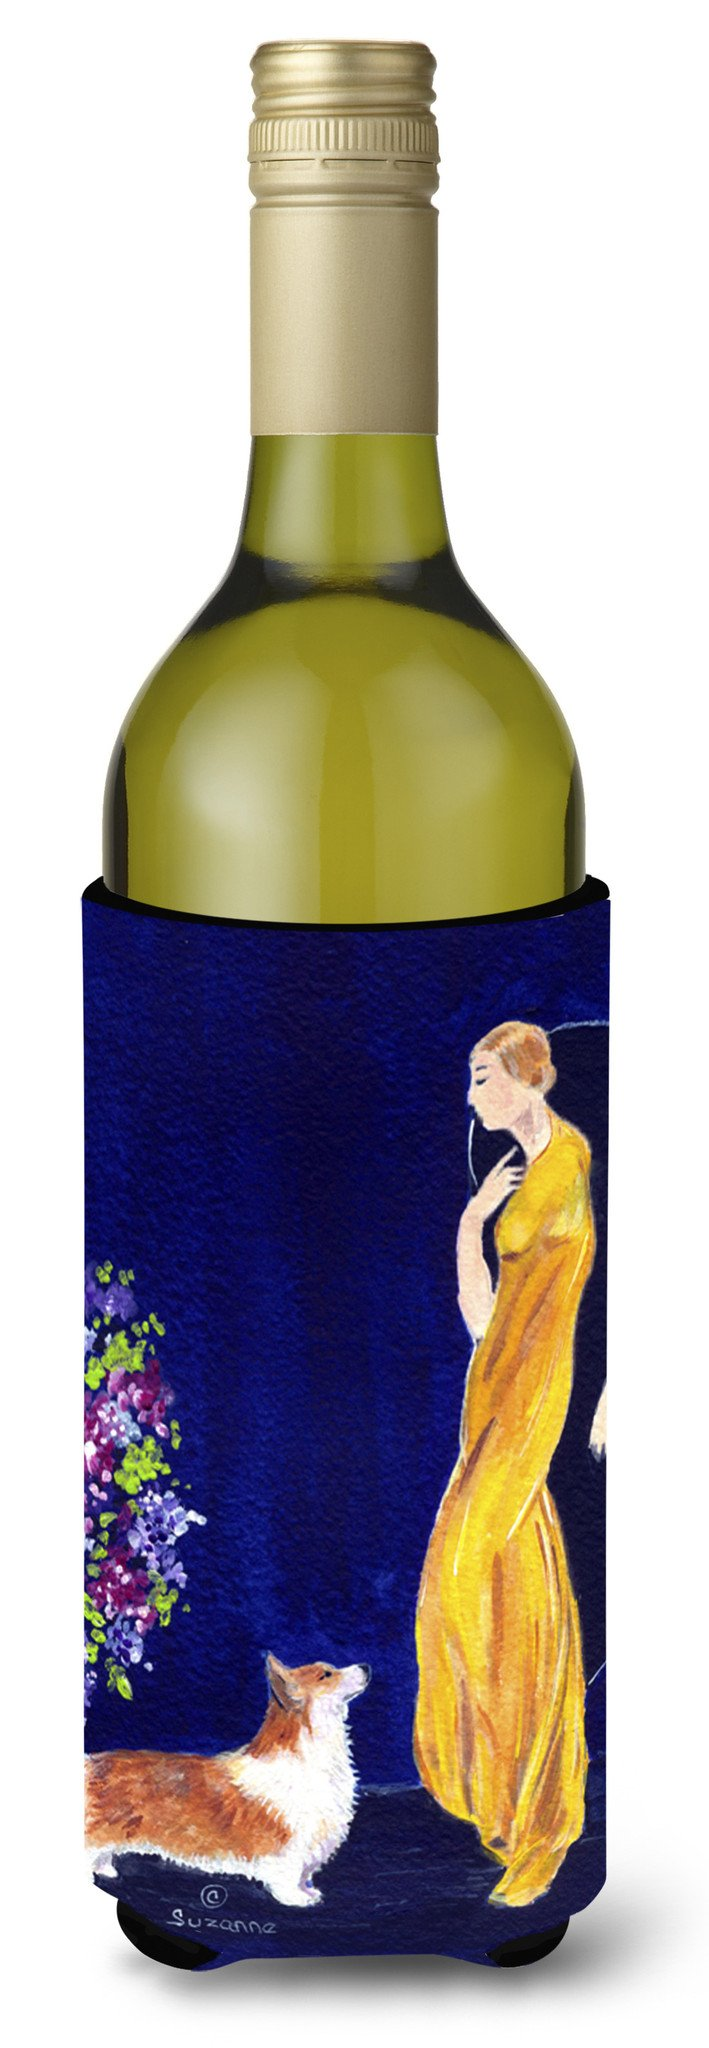 Buy this Lady with her Corgi Wine Bottle Beverage Insulator Beverage Insulator Hugger